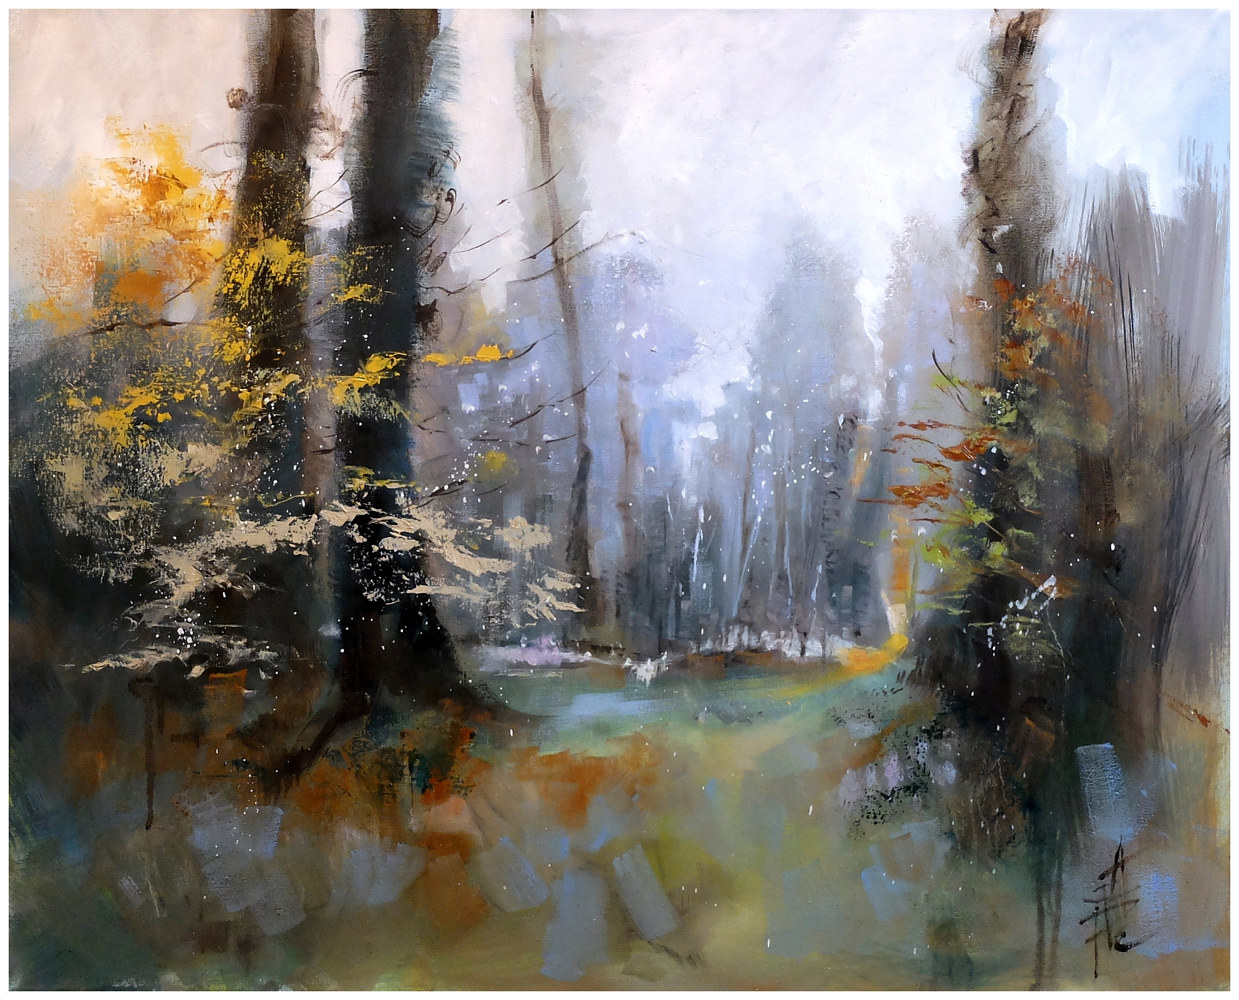 WOODLAND MORNING.oil on canvas, 76x62cm by Anne Farrall Doyle